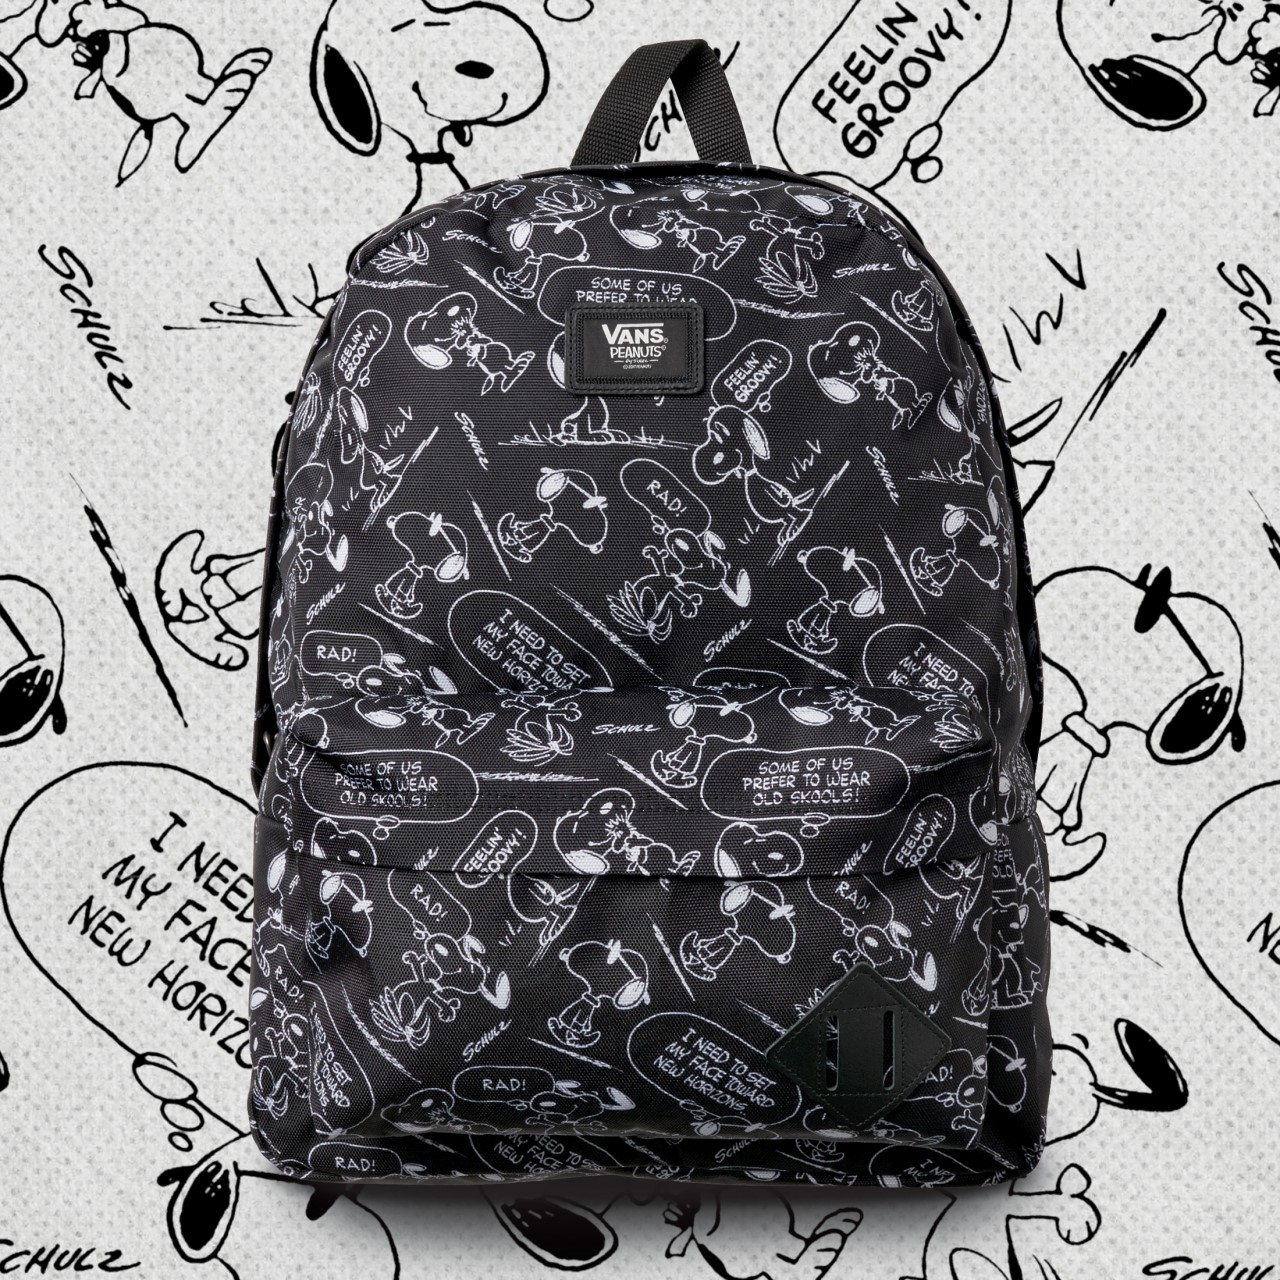 09e70733de Vans x Peanuts New Collection Are Iconic Charles M. Schulz s Original Comic  Illustrations - MASSES